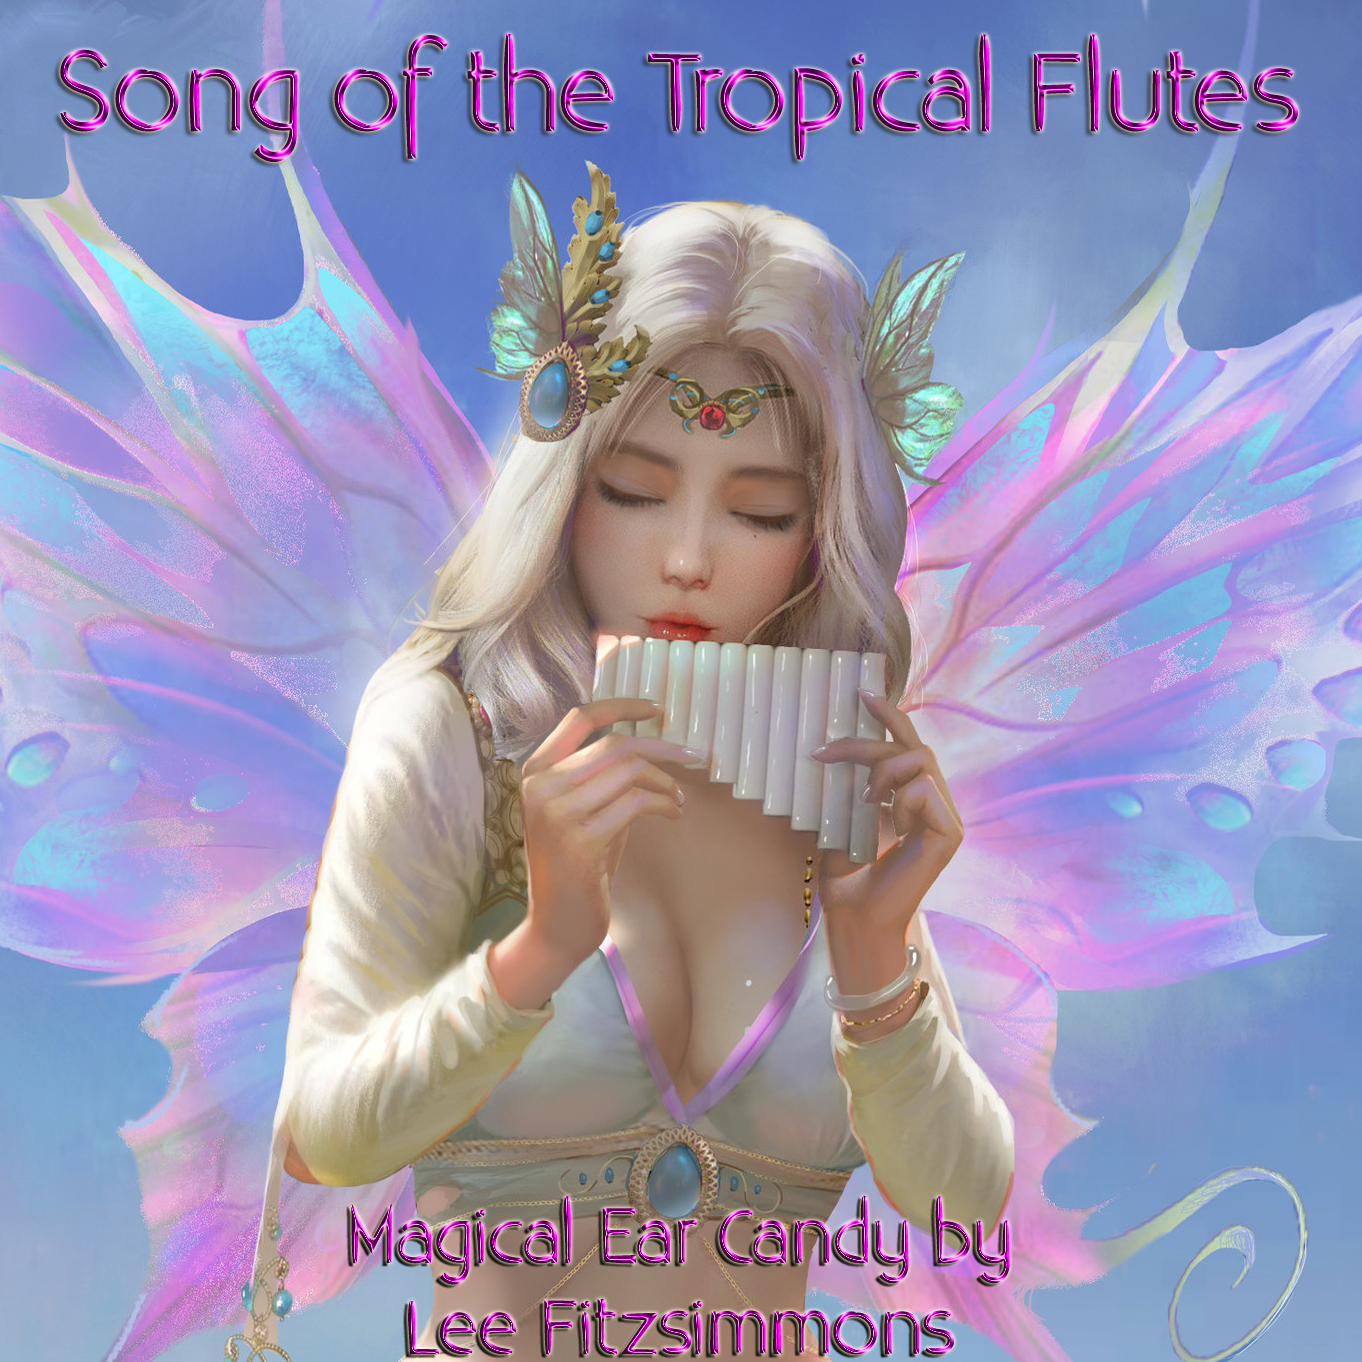 Song of the Tropical Flutes